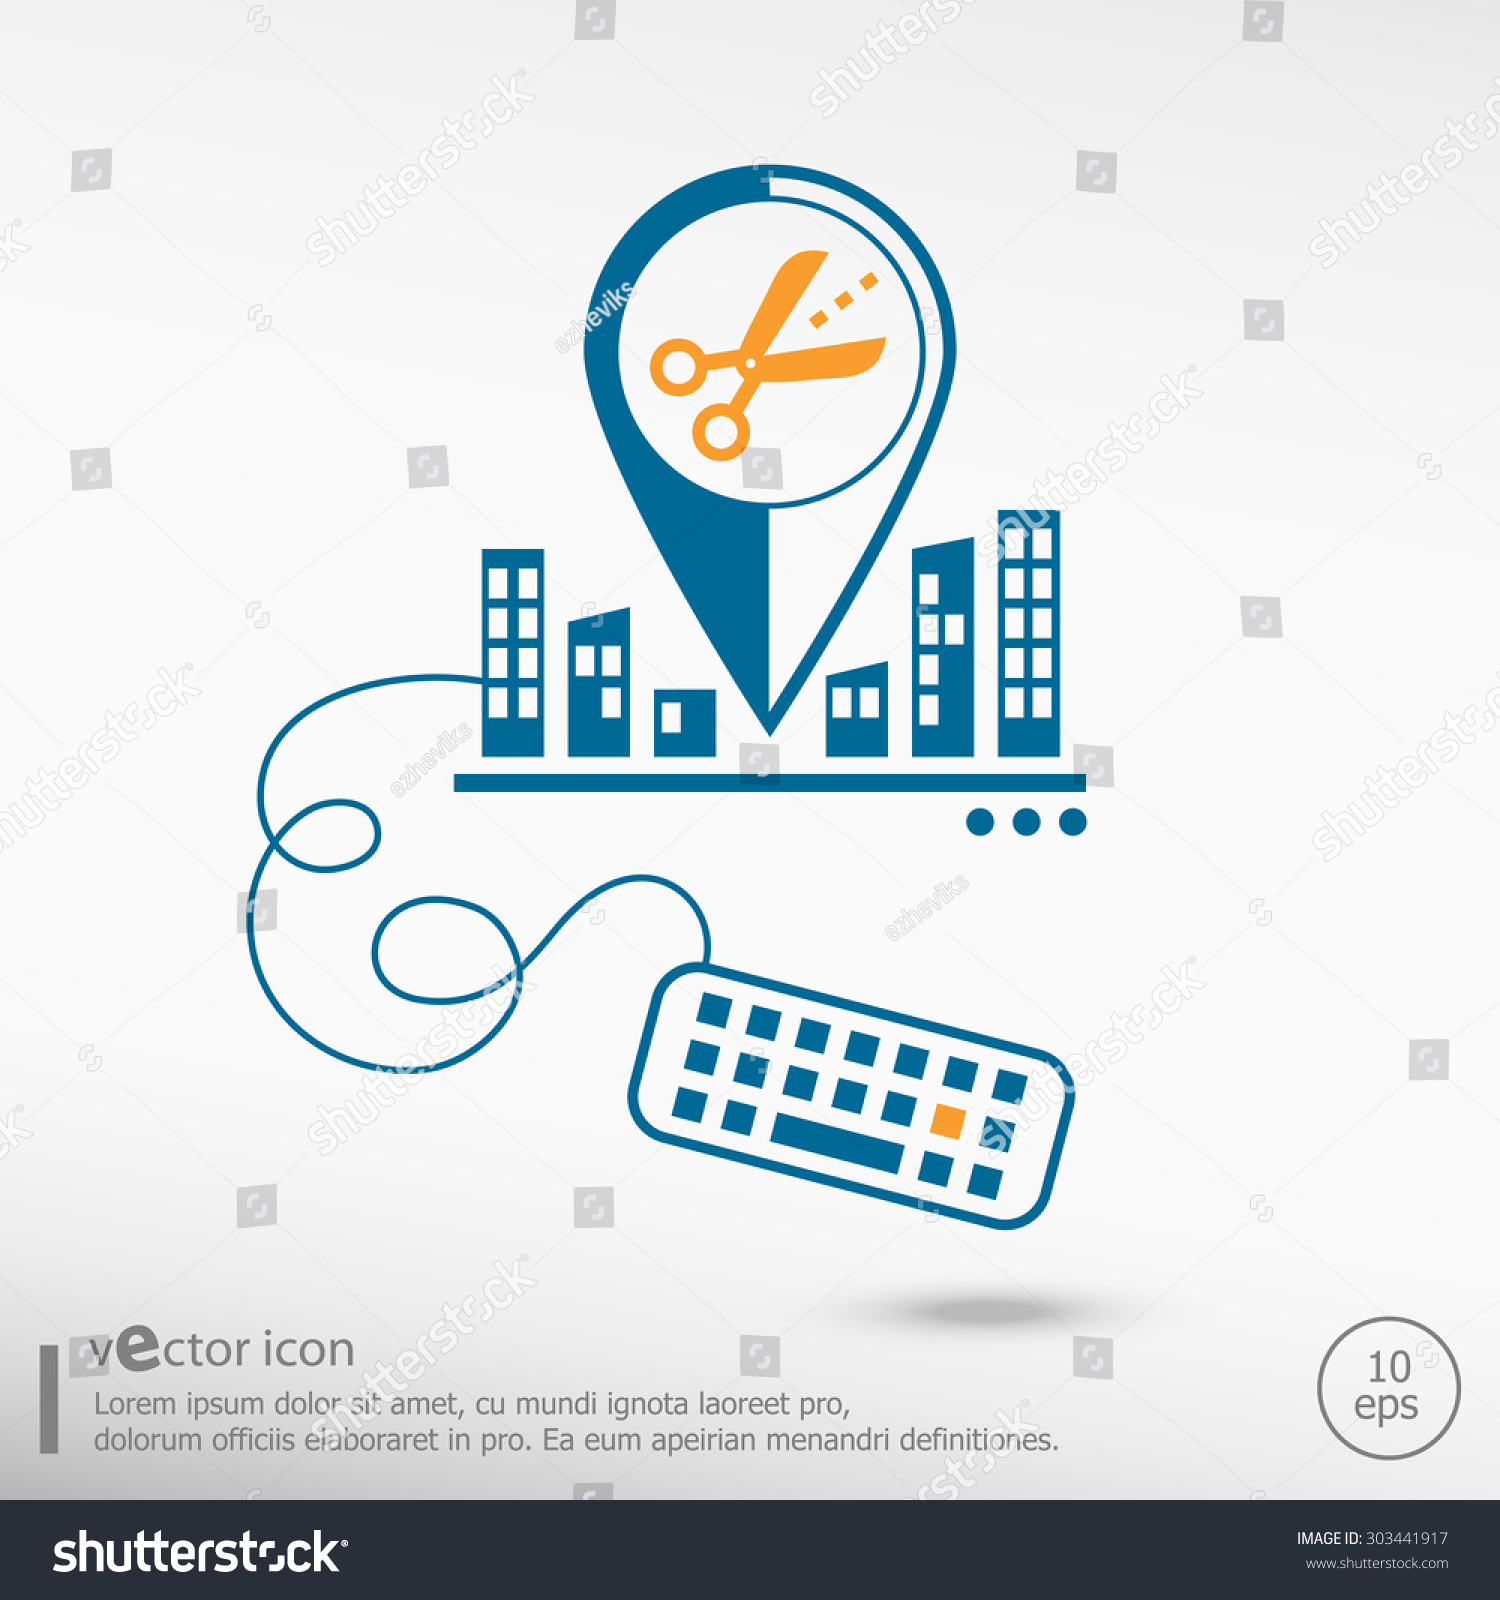 Scissors icon cut lines keyboard line stock vector 303441917 scissors icon with cut lines and keyboard line icons for application development creative process buycottarizona Image collections